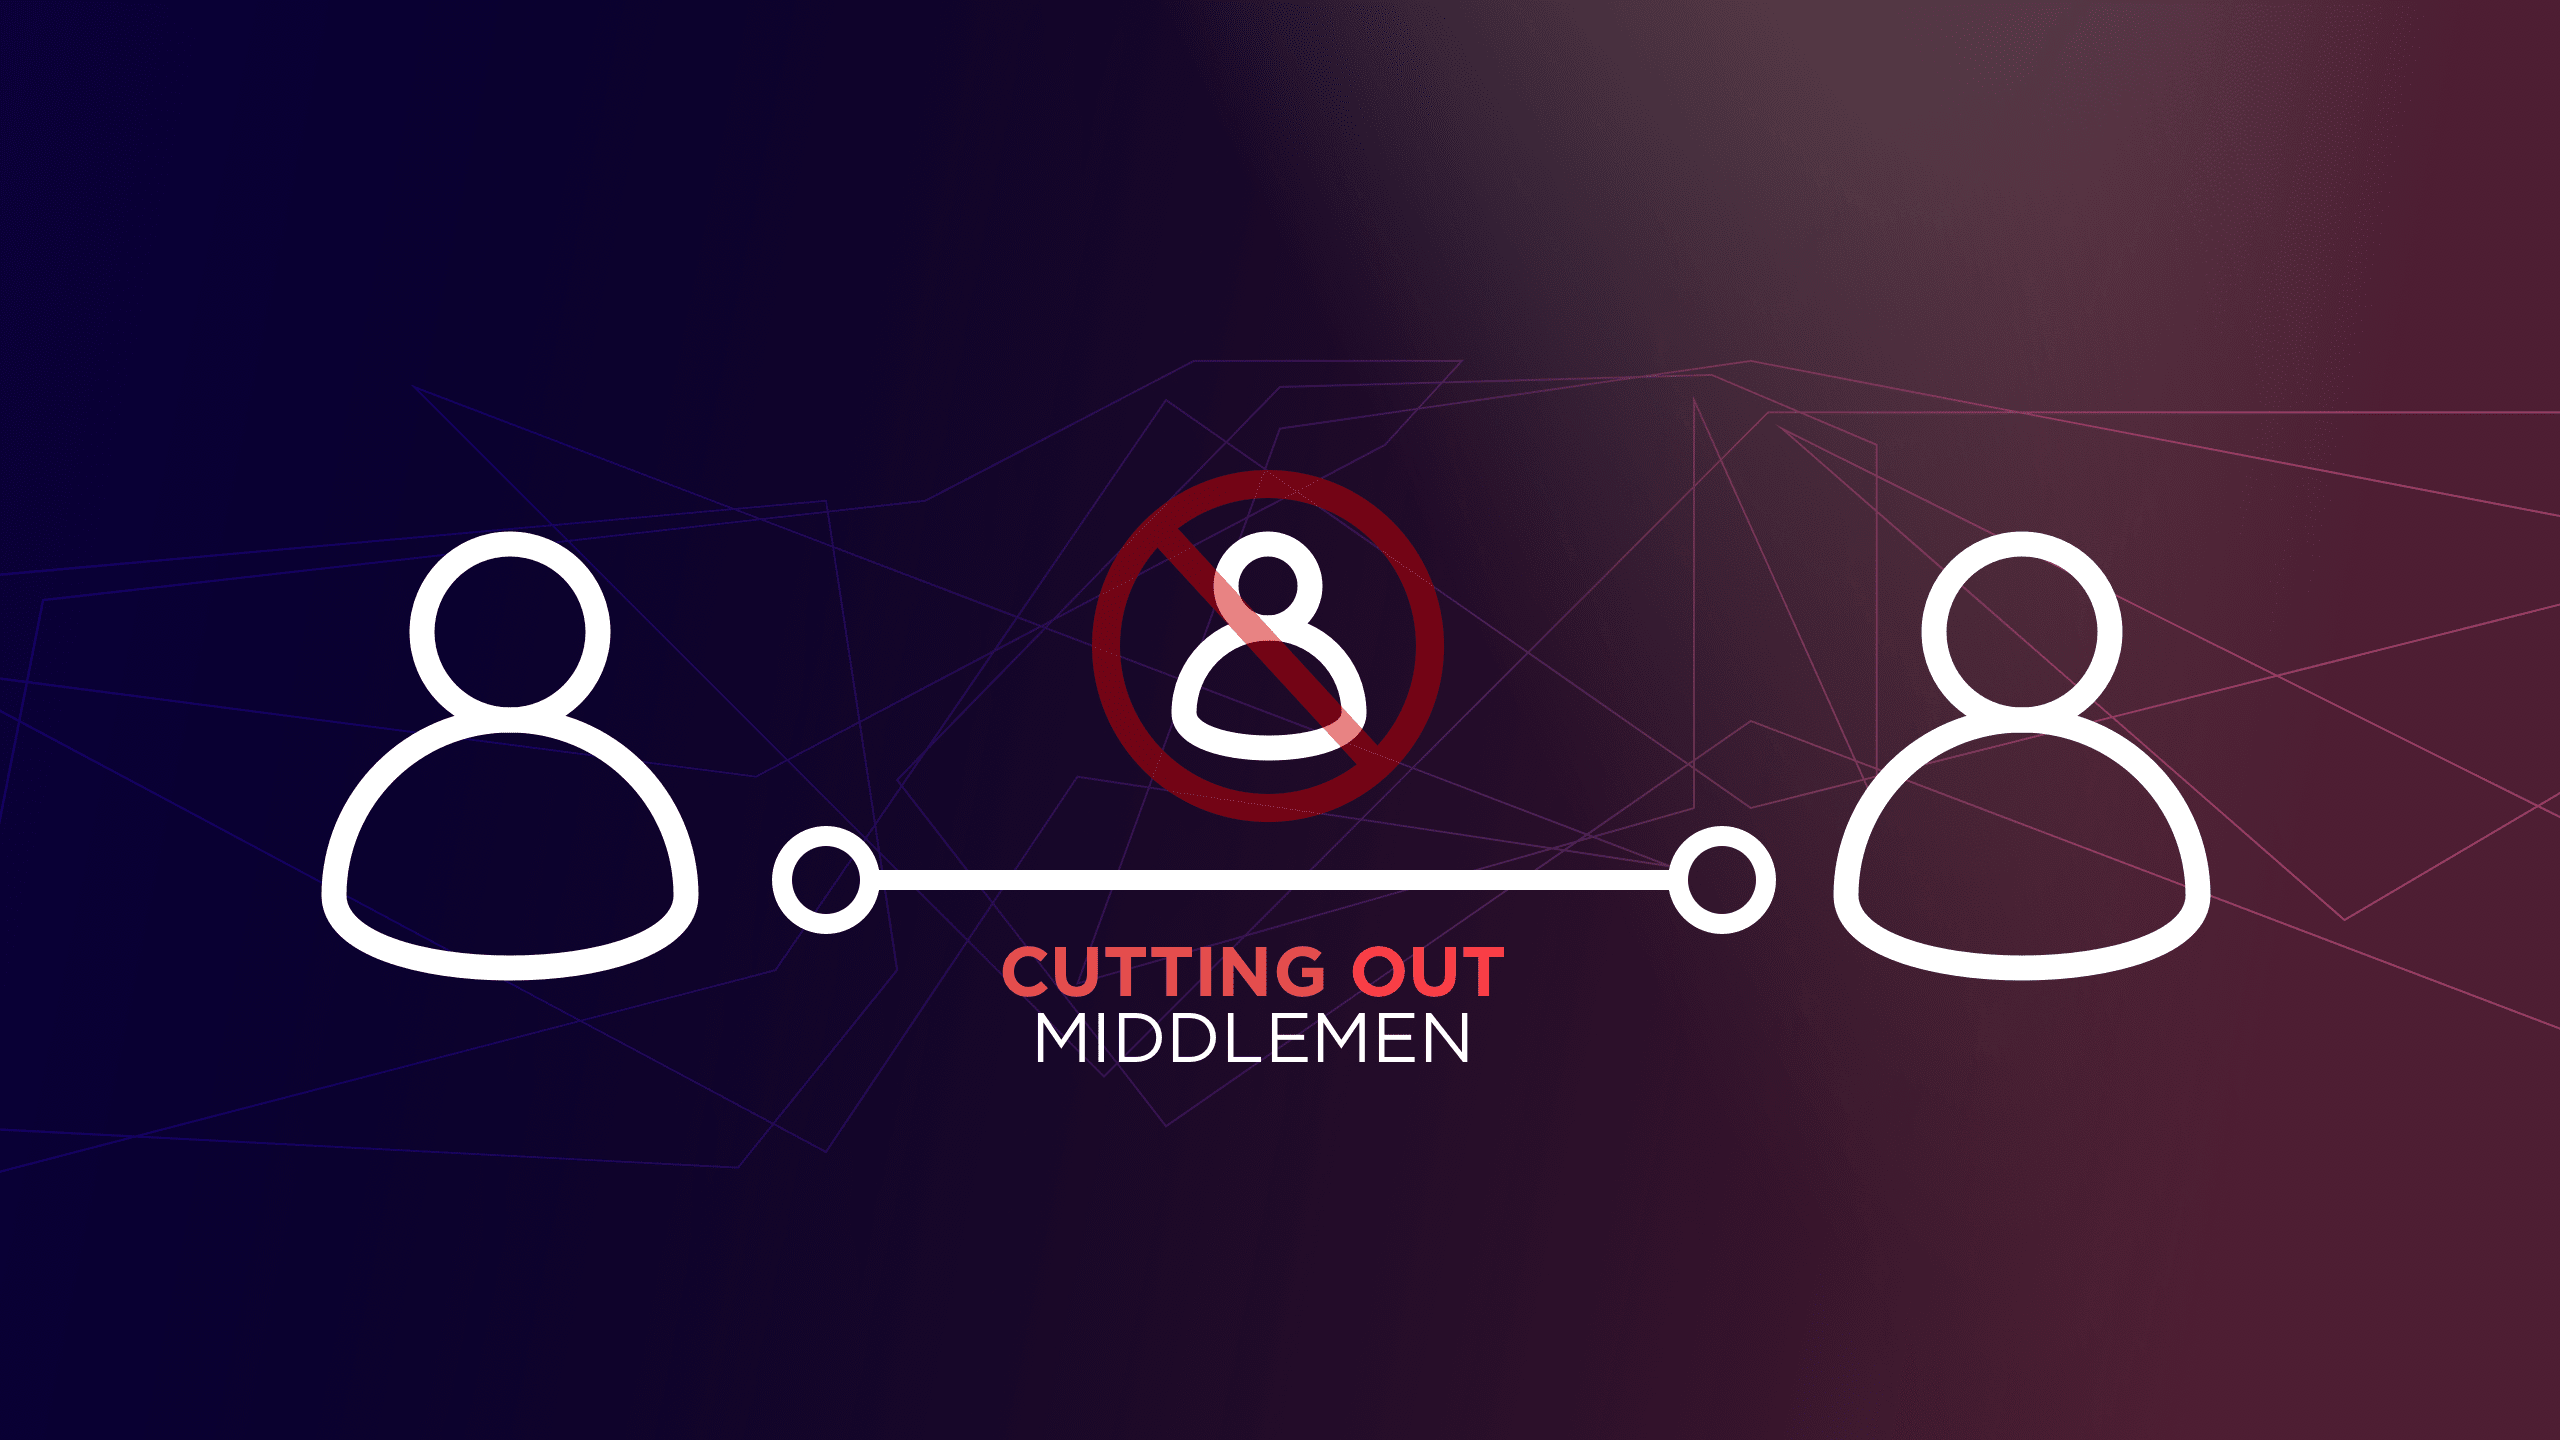 Increasing margins by cutting out middlemen